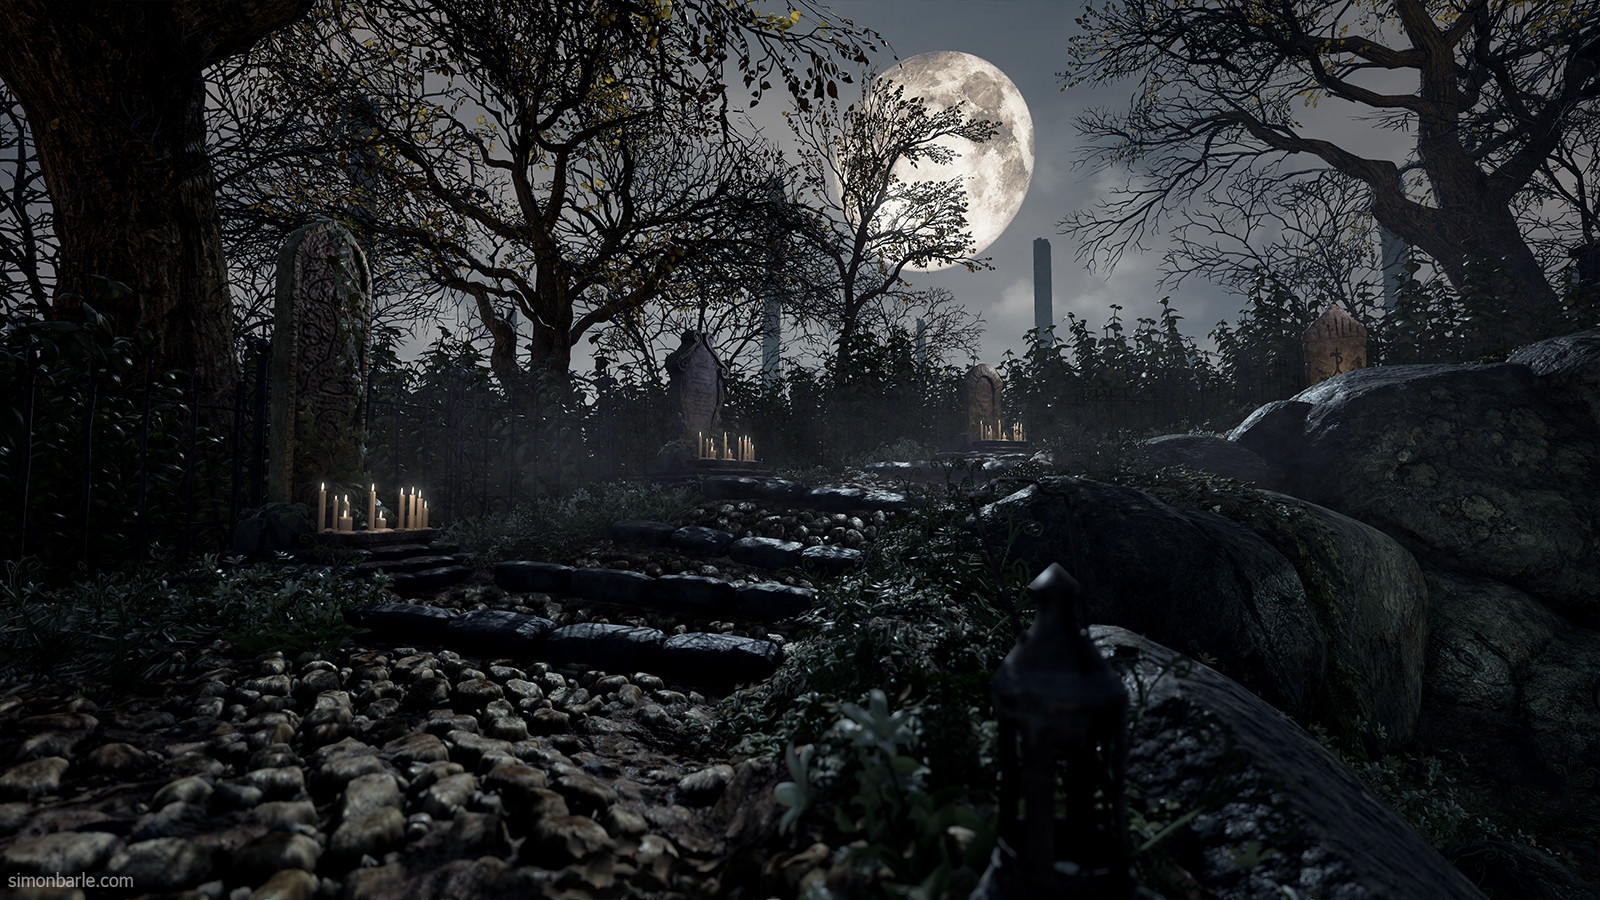 Bloodborne recreated in unreal engine 4 looks stunning vg247 for Unreal engine 4 architecture